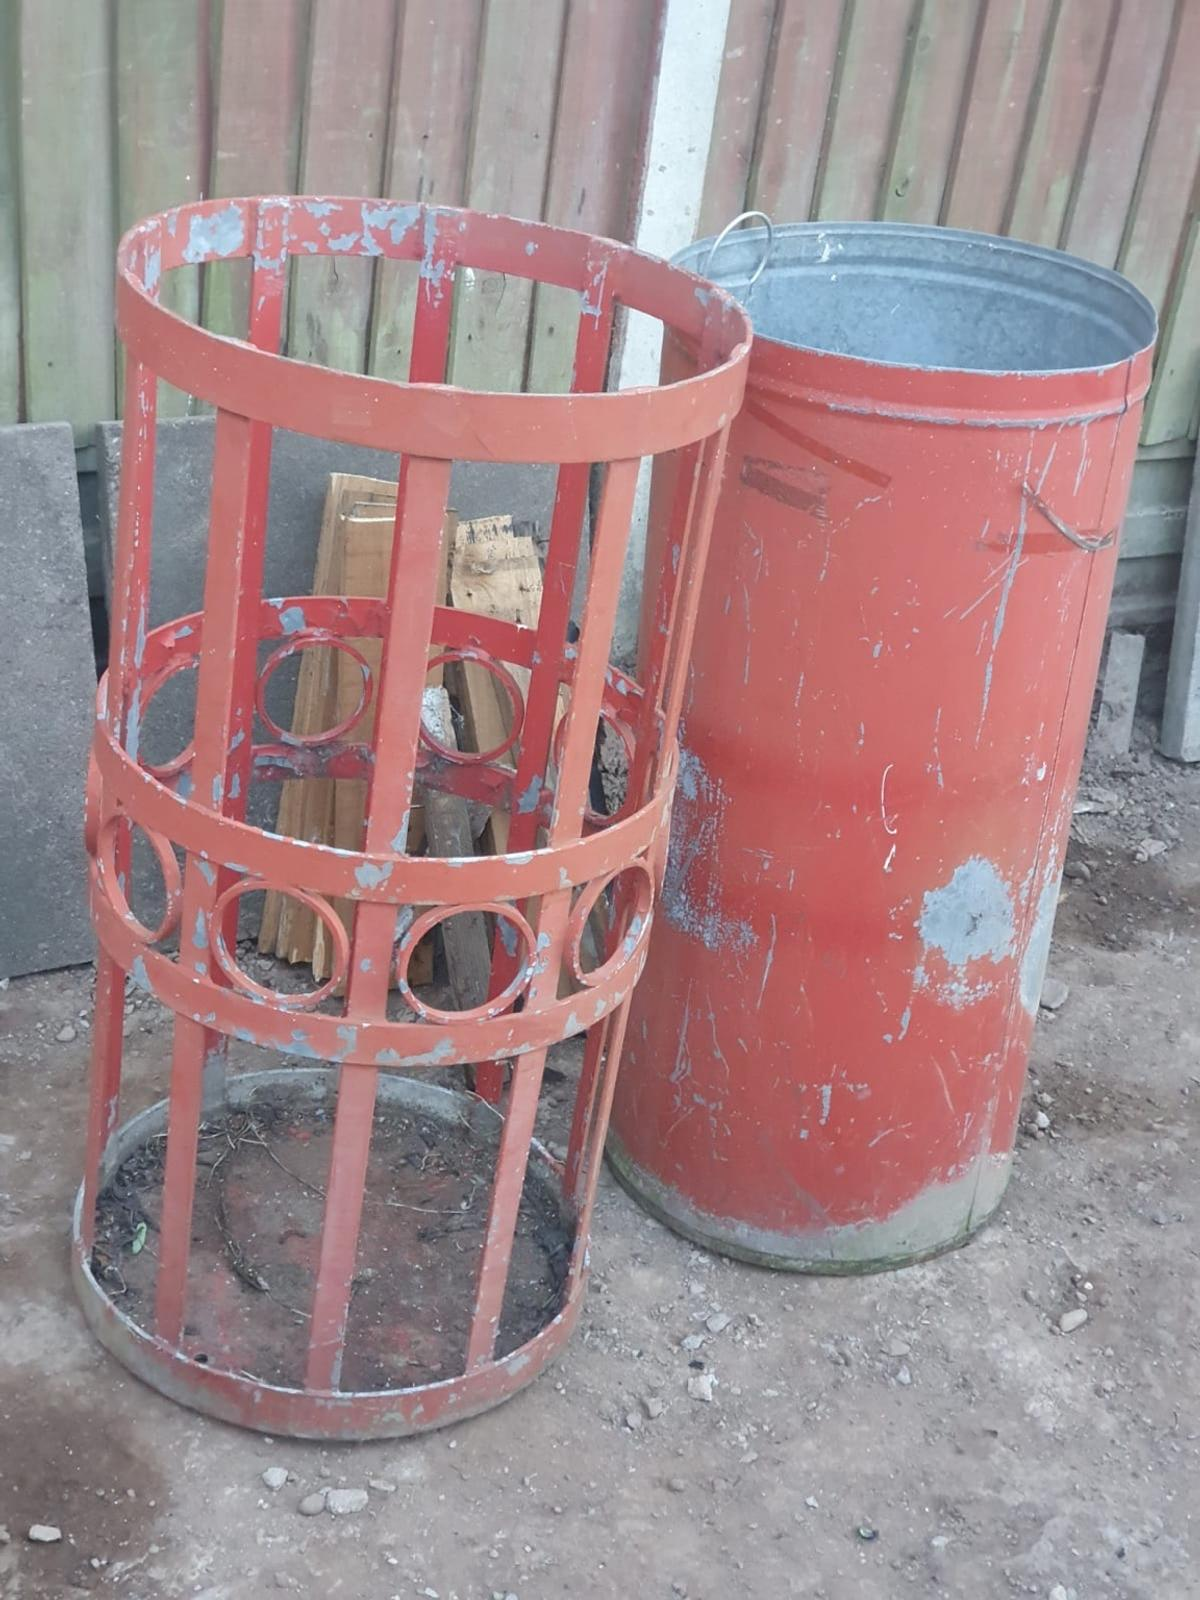 Hi there selling a old metal bin came from delolition job it's very old make a nice plant or a bin so grab yourself a bargain